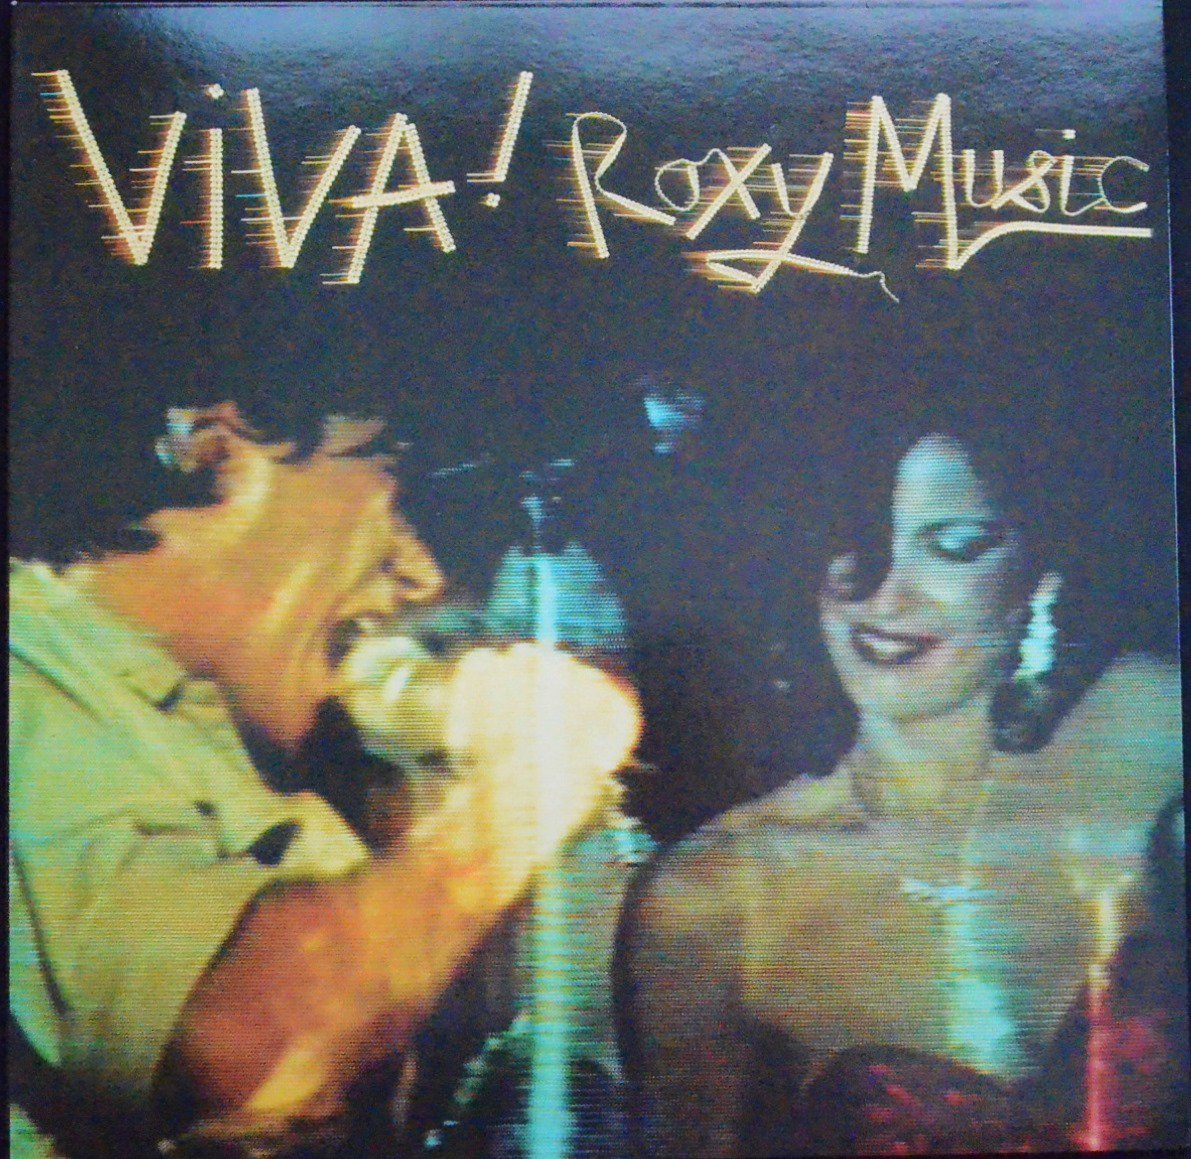 ROXY MUSIC ‎/ VIVA! ROXY MUSIC (THE LIVE ROXY MUSIC ALBUM) (LP)